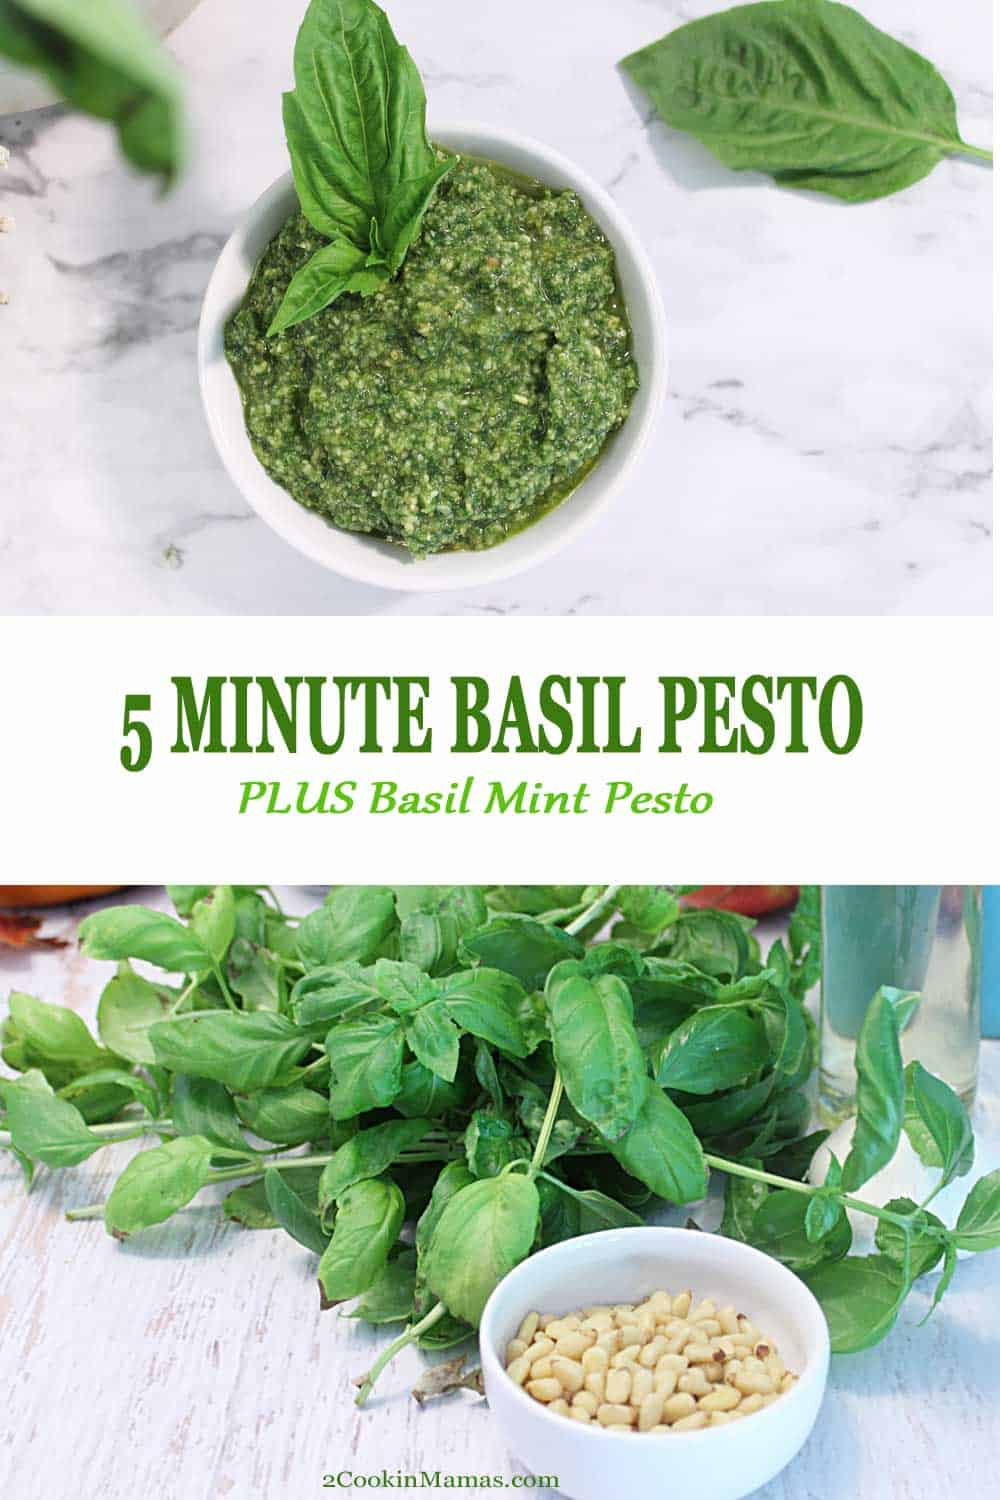 5 Minute Basil Pesto | 2 Cookin Mamas When there's plenty of basil, make a delicious basil pesto or change it up with a bit of mint for a Basil Mint Pesto. Perfect for using on pizza, pasta, in lieu of mayo on sandwiches and salads or take your corn on the cob up a notch. #pesto #basil #mint #pinenuts #recipe #homemade #healthy